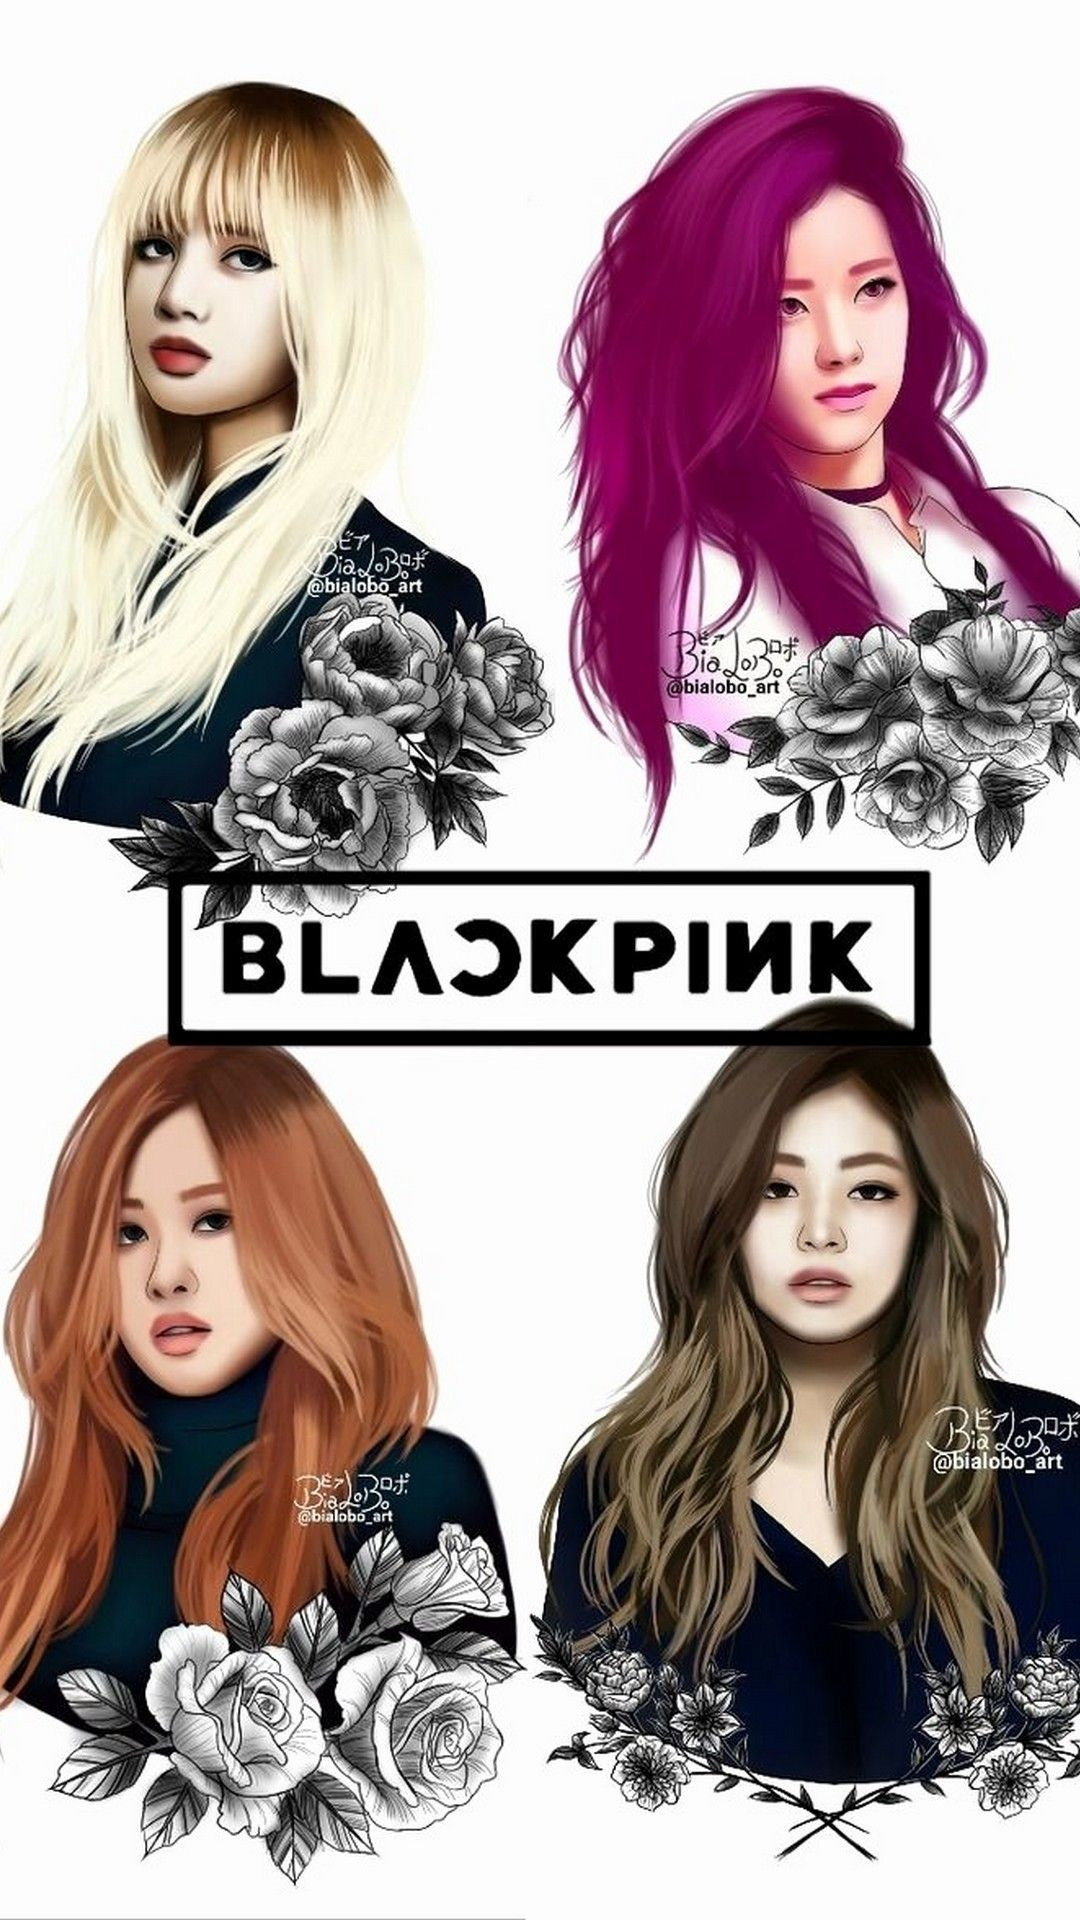 Blackpink Phone Wallpaper Posted By Christopher Peltier